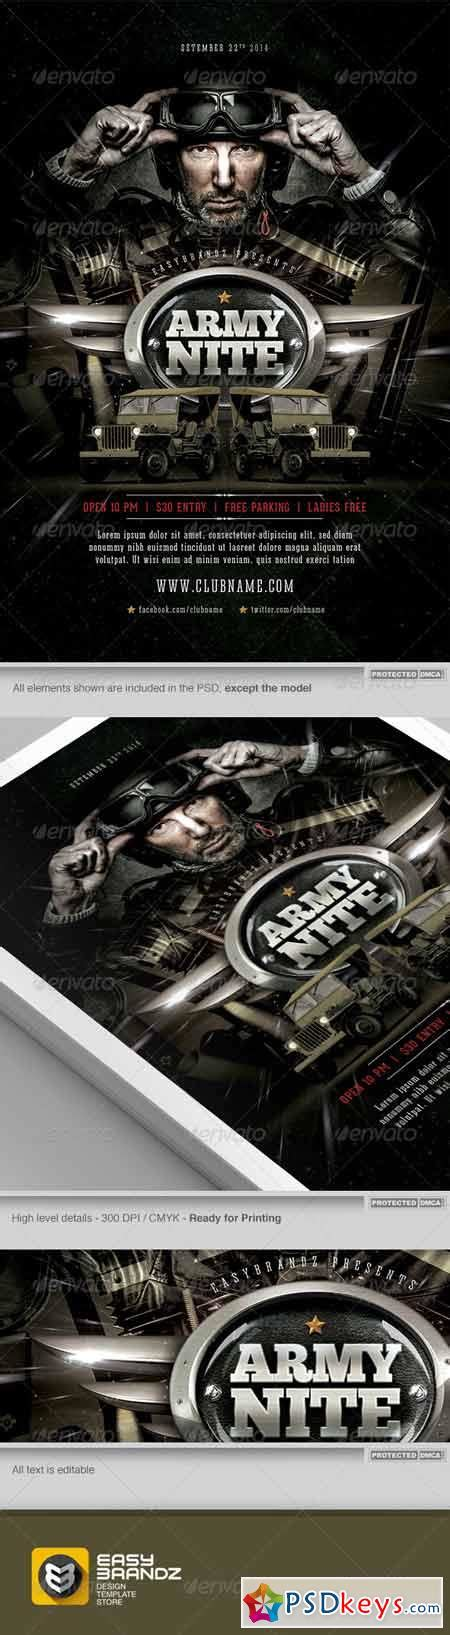 military templates for photoshop army nite flyer template 7476586 187 free download photoshop